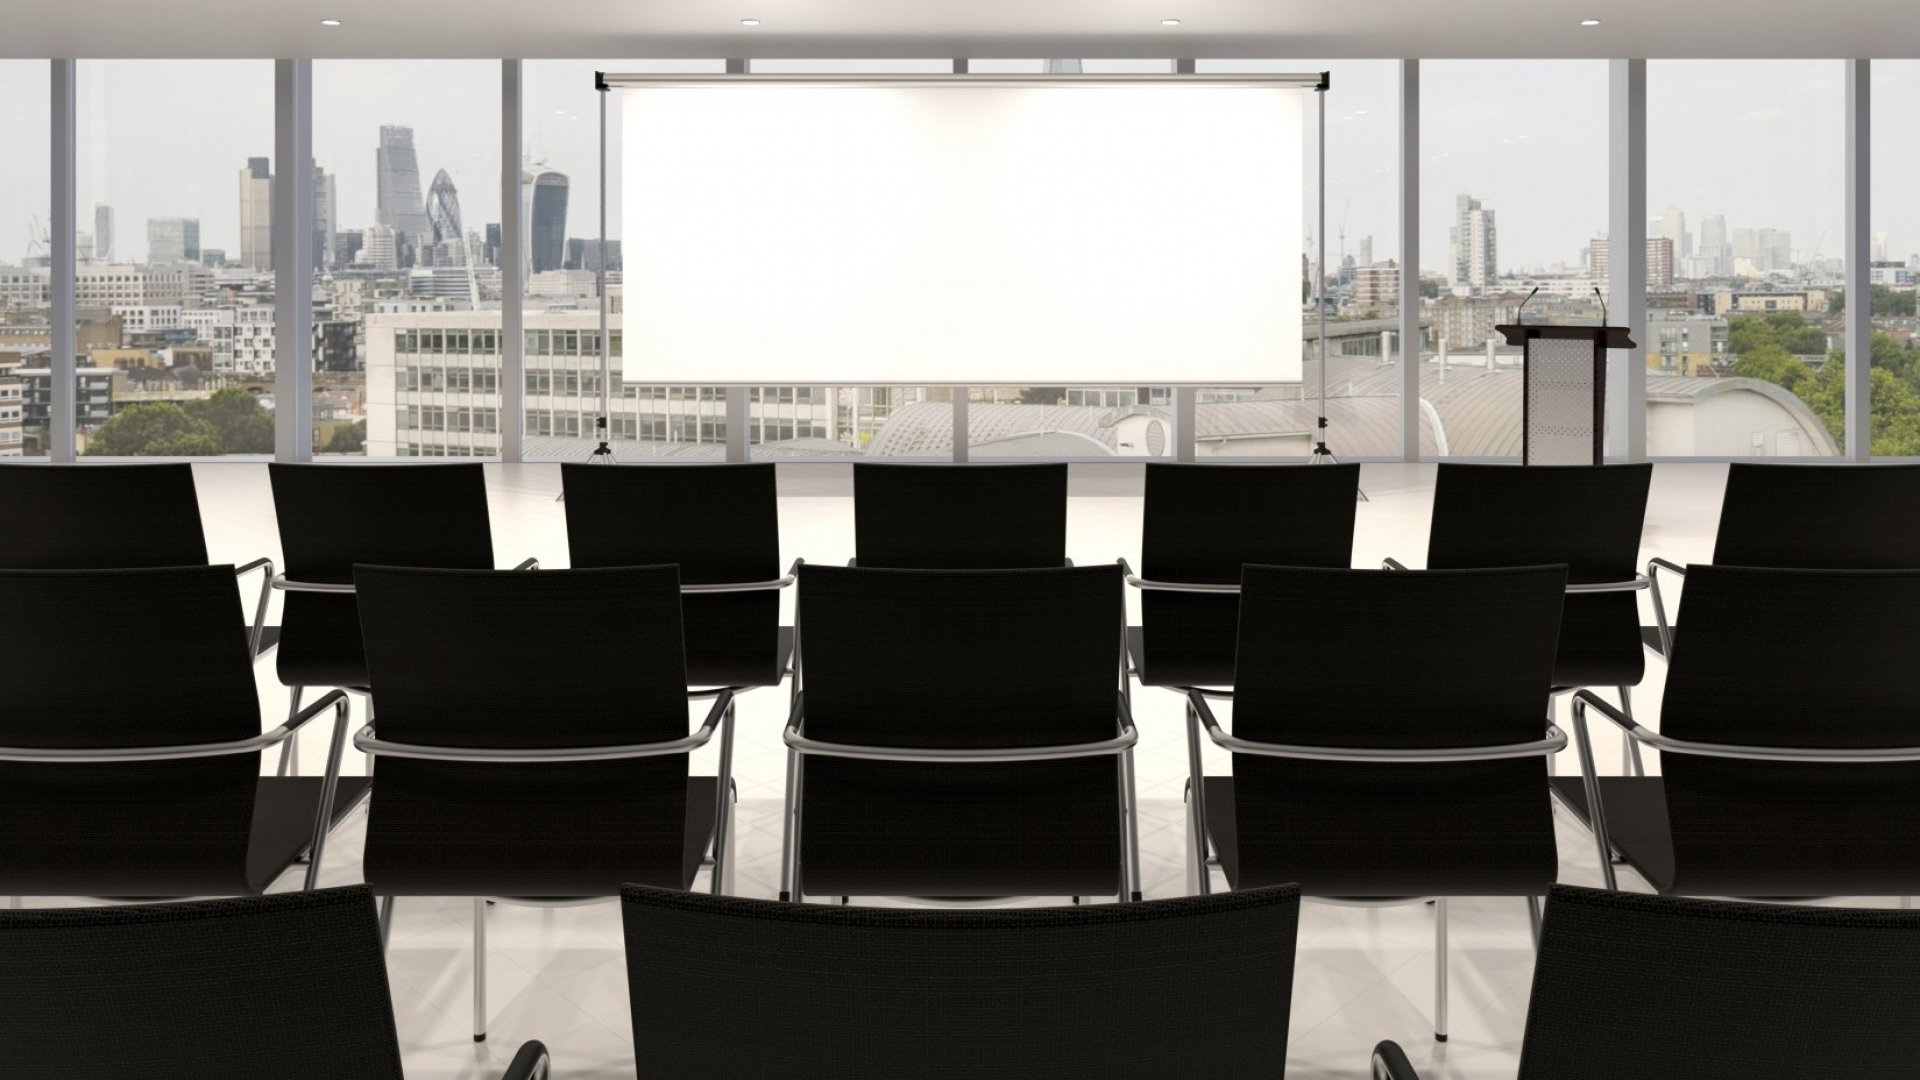 Yes, a Powerpoint Presentation Can Be Exceptionally Memorable. Here Are 2 Easy Hacks